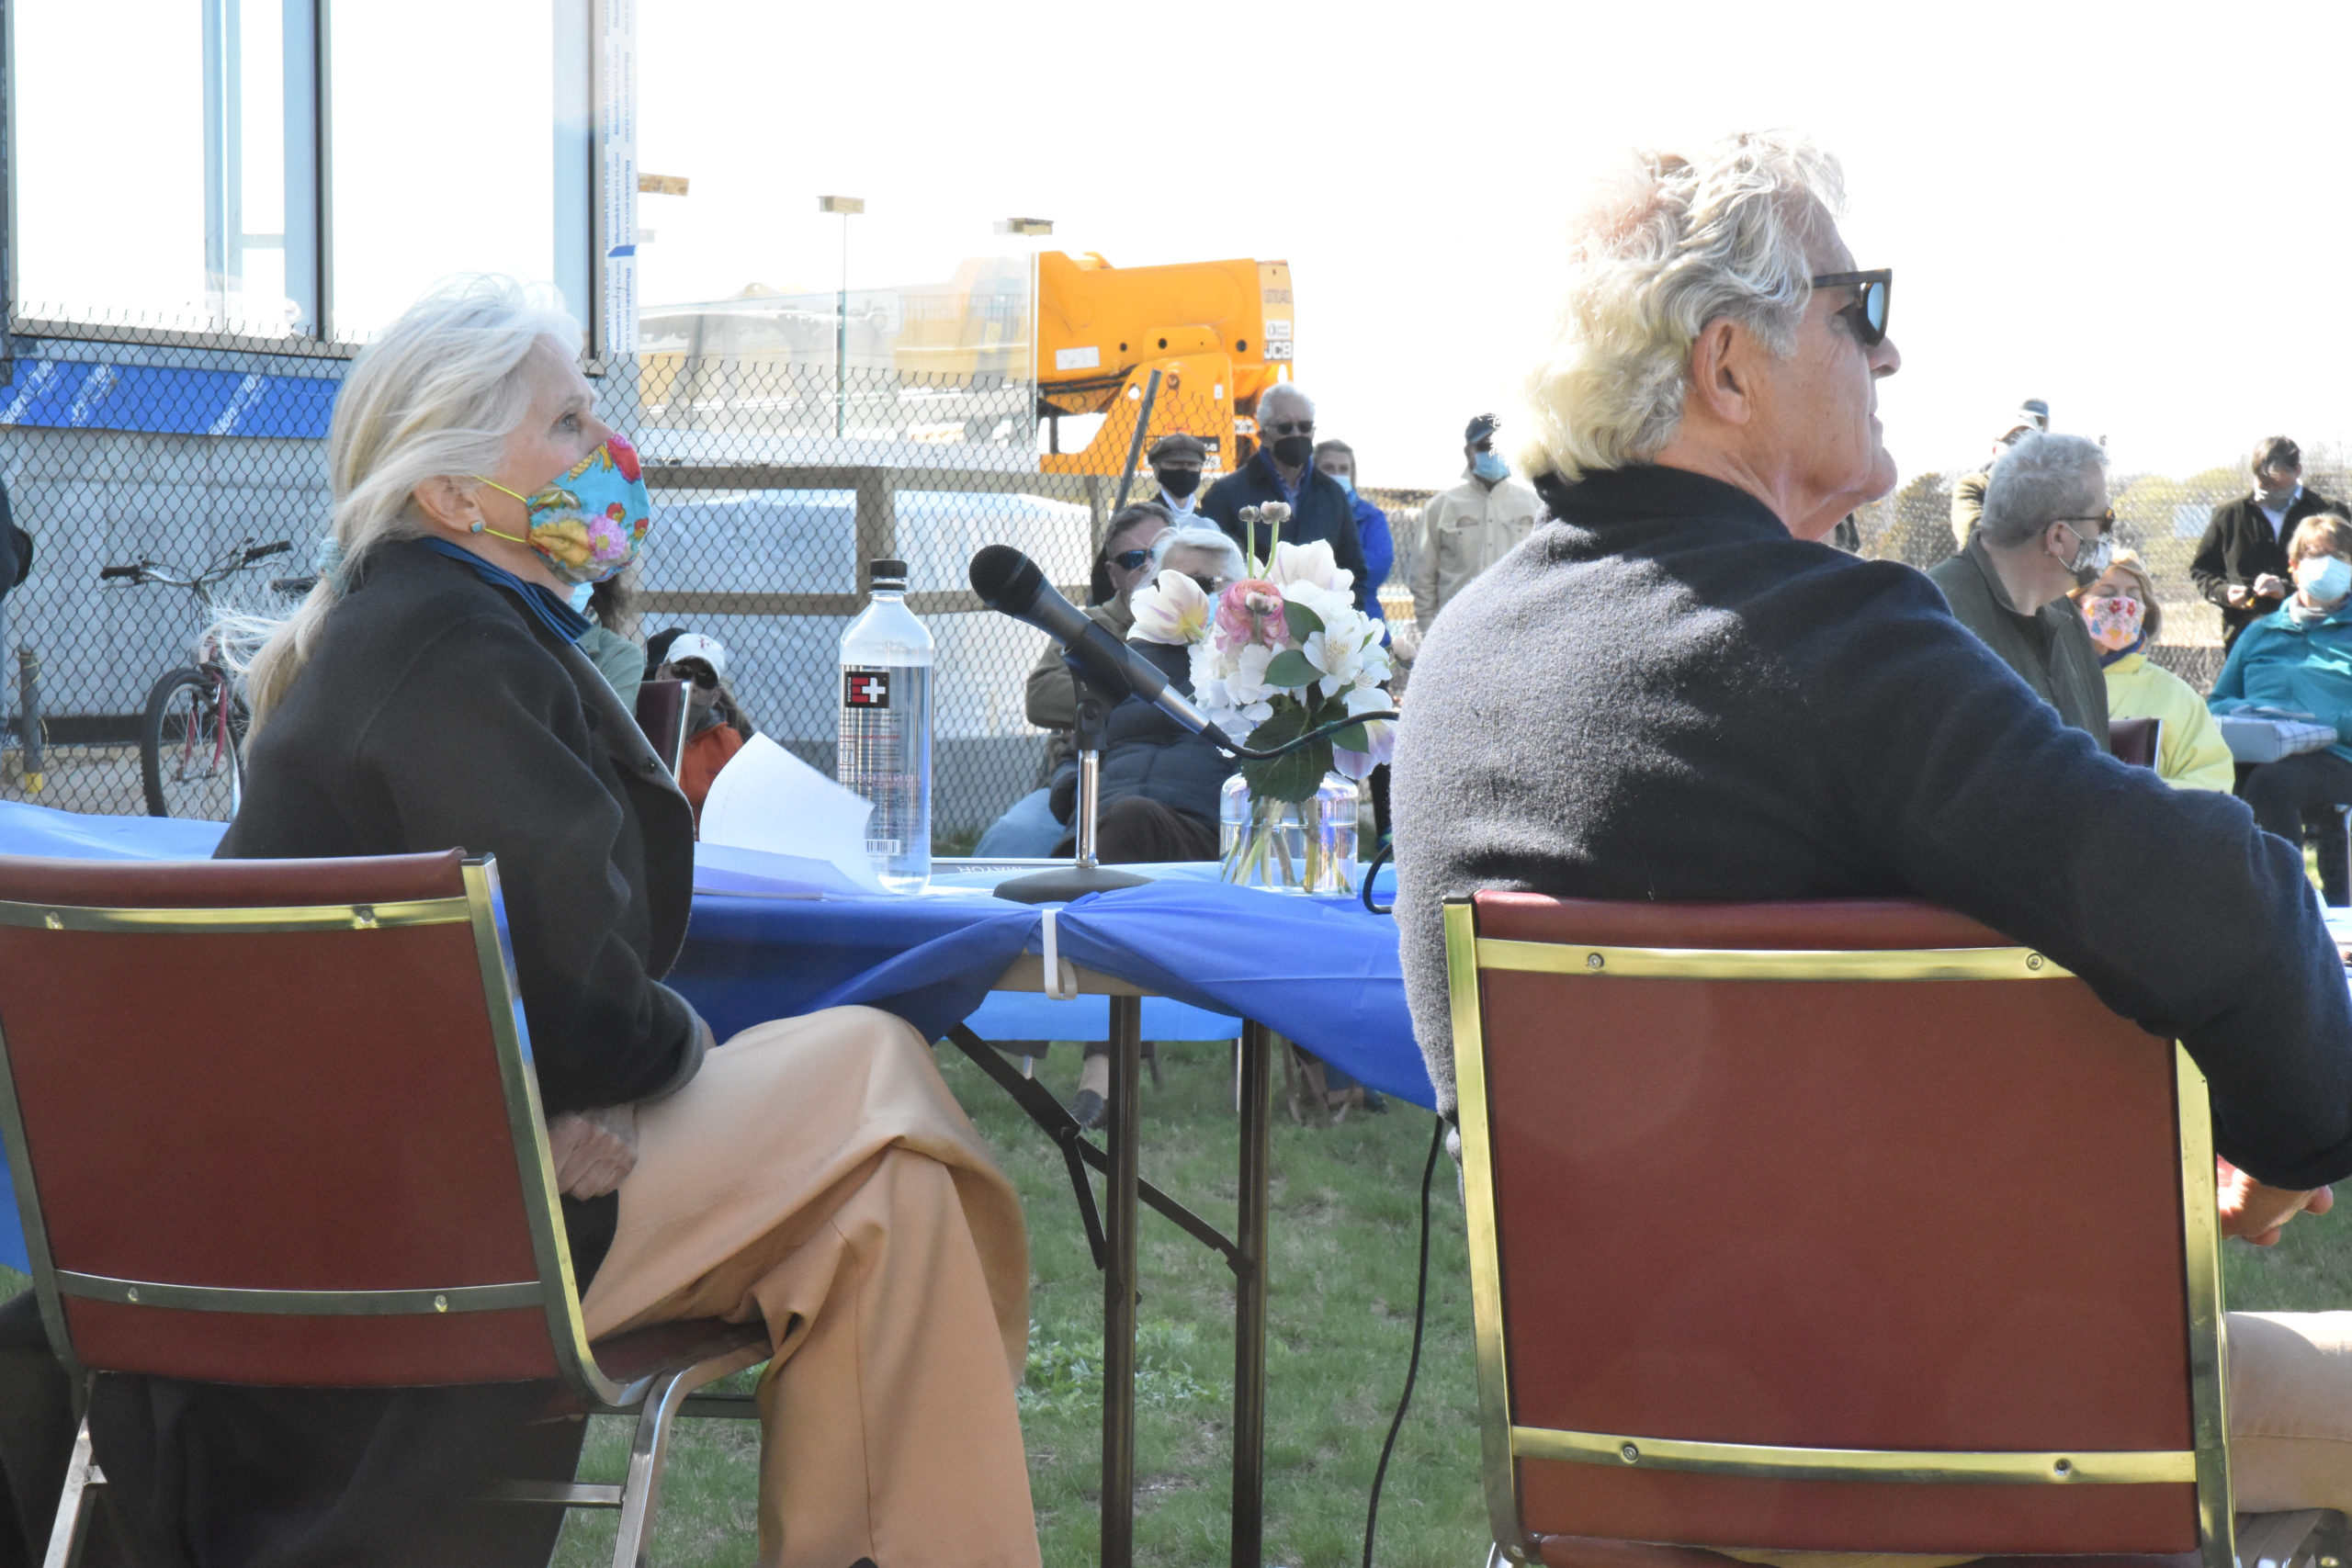 Mayor Kathleen Mulcahy and Trustee James Larocca will face off in the June 15 mayoral election. They are seen here at an April 23 forum on waterfront development held at John Steinbeck Waterfront Park.  STEPHEN J. KOTZ